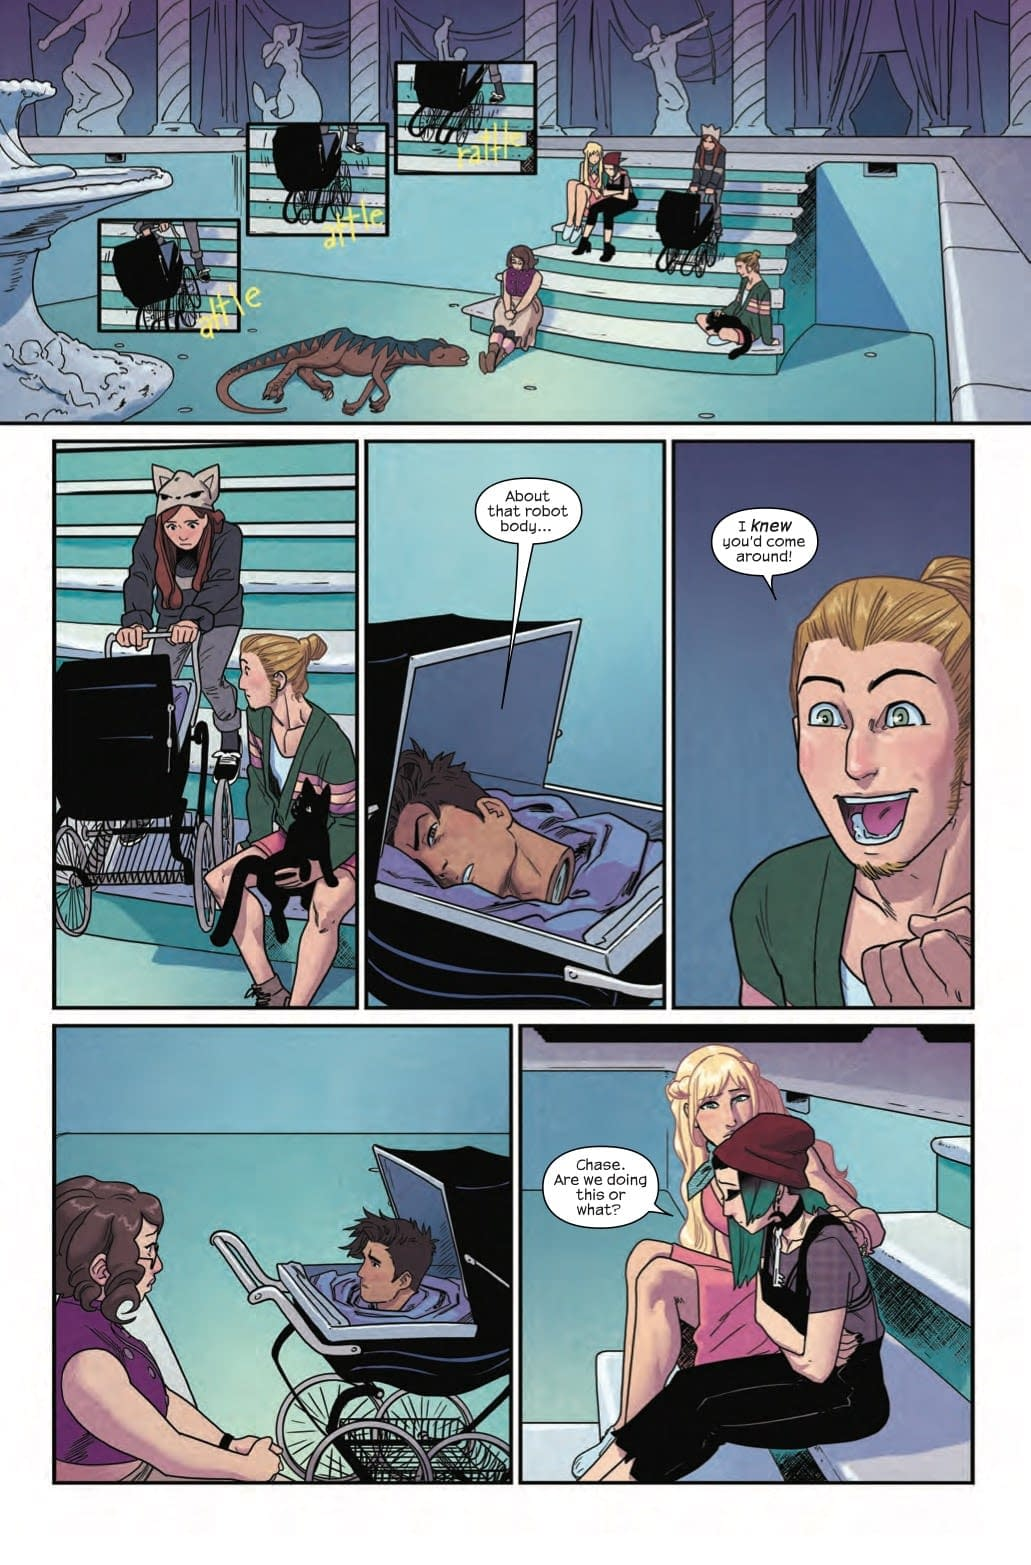 The World's Worst Pool Party in Next Week's Runaways #15